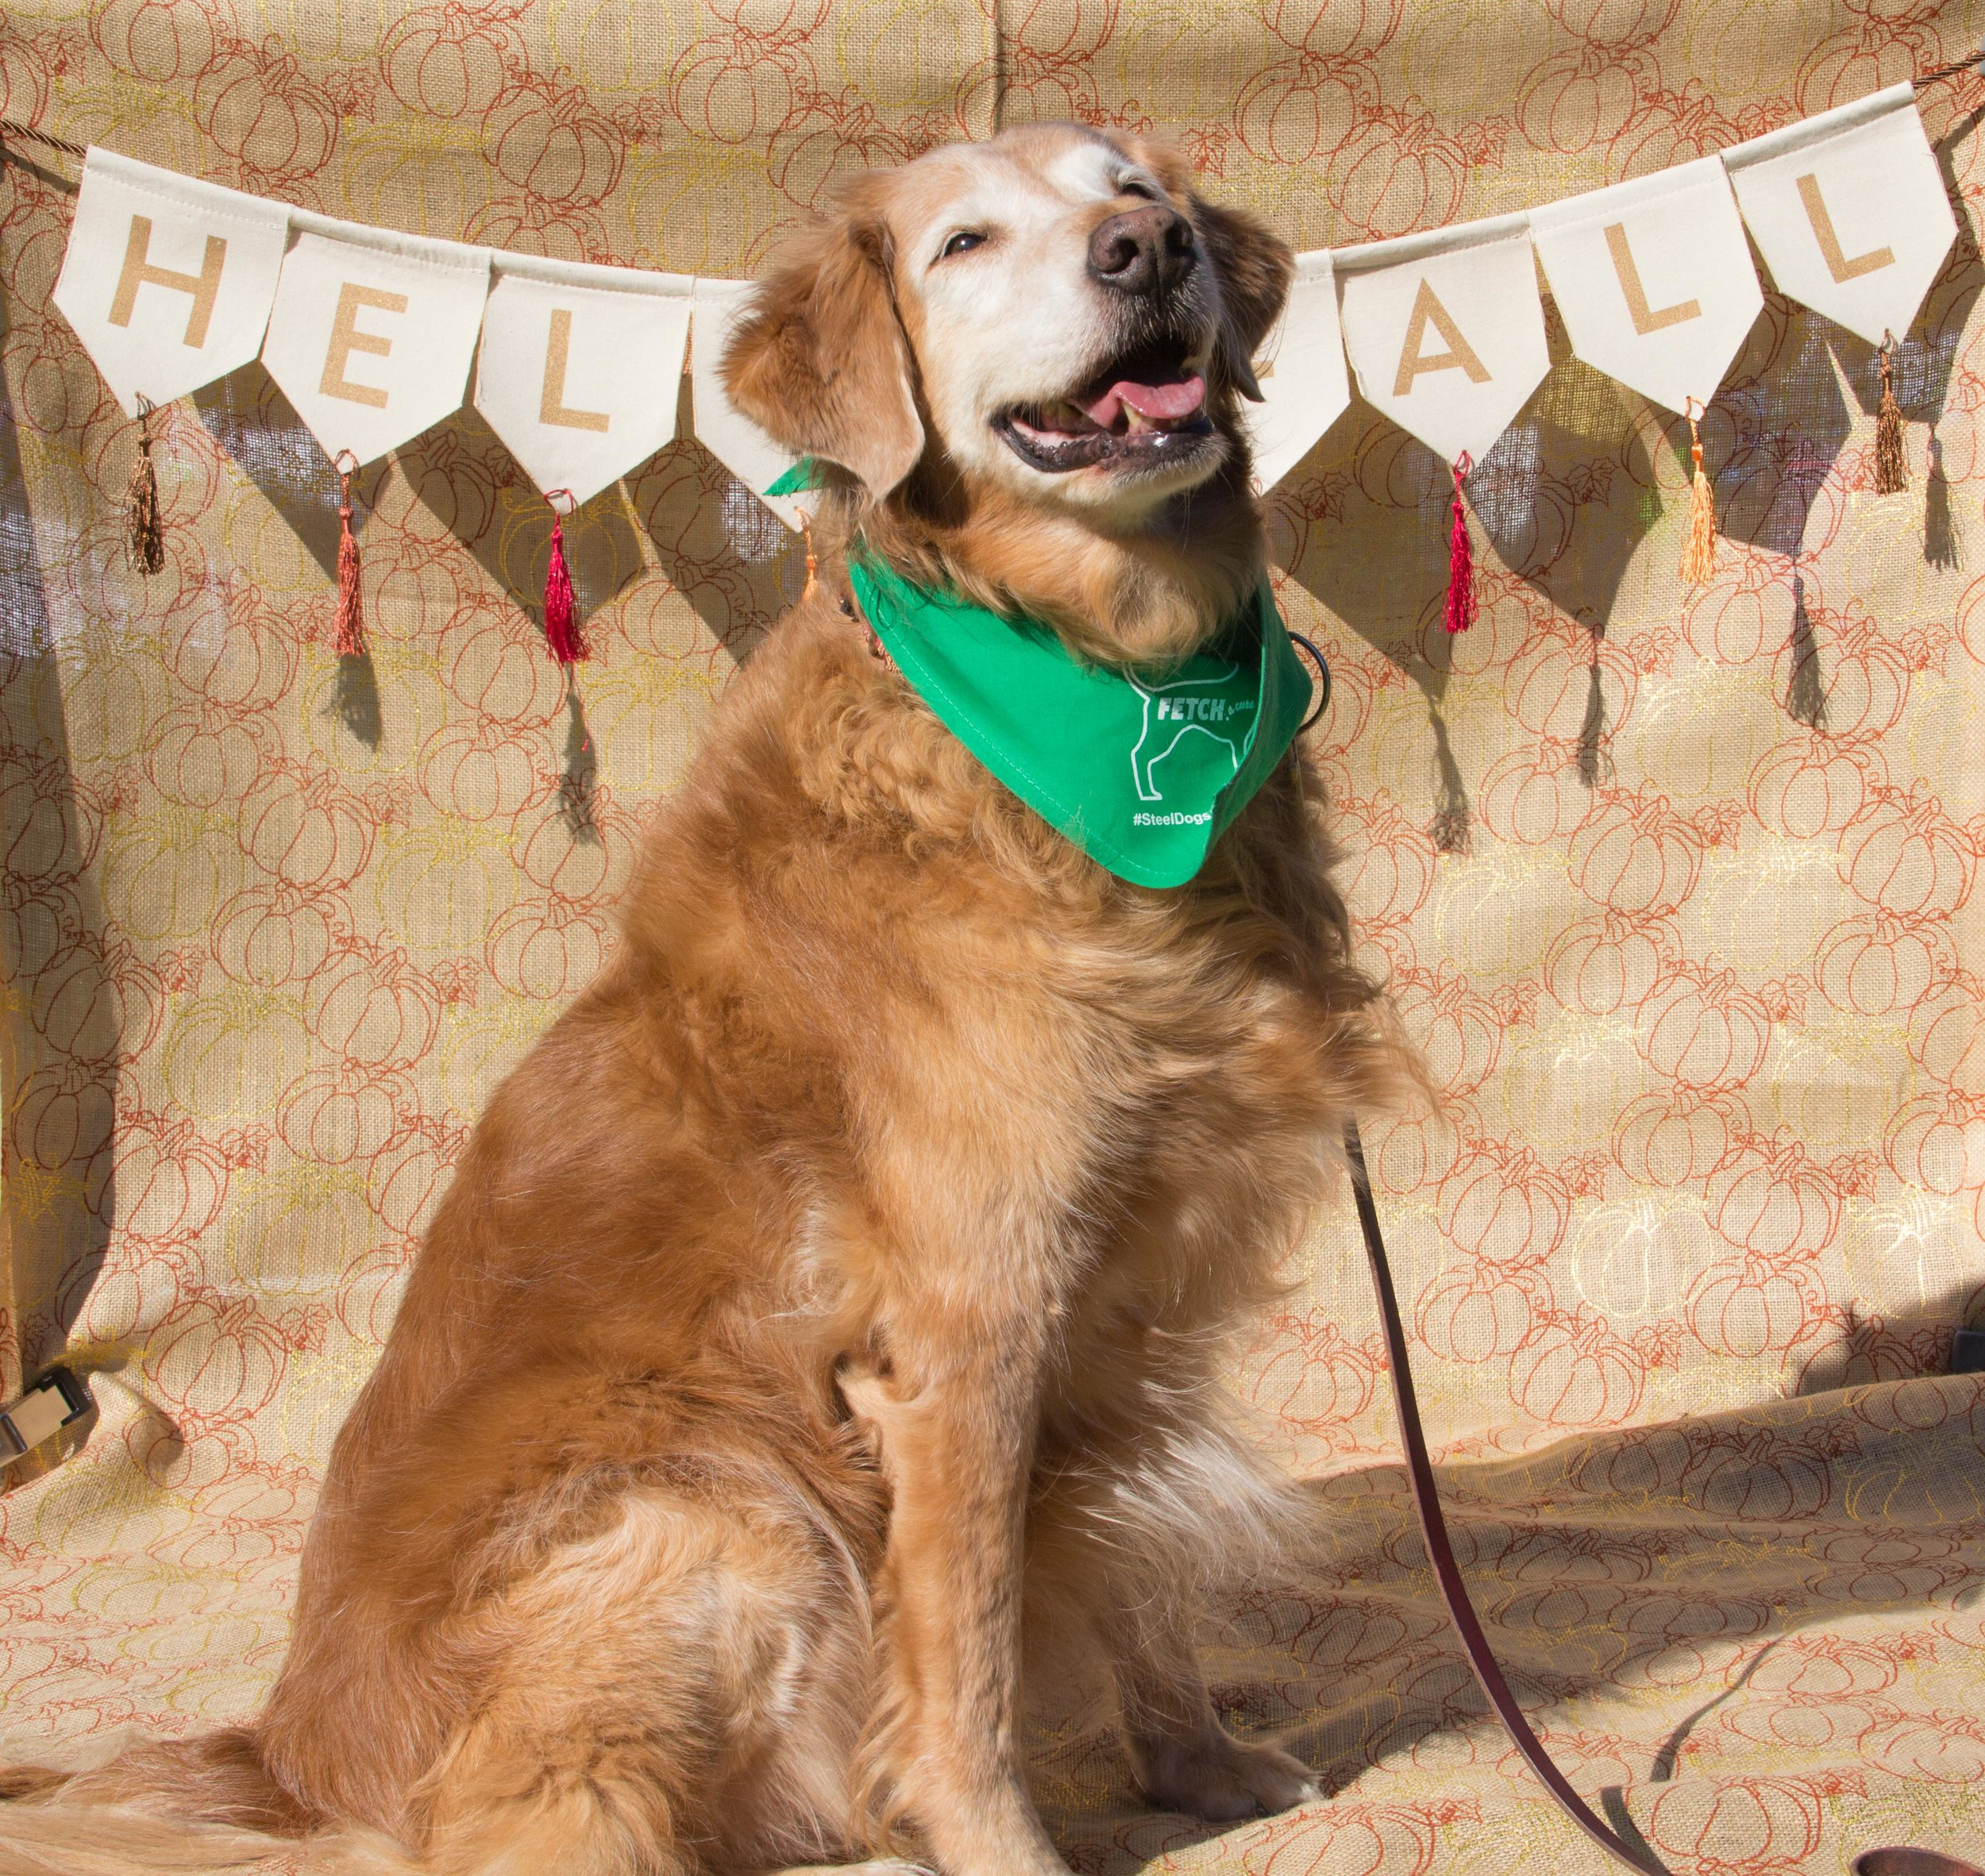 Gorgeous Old Golden Retriever smiling for the camera